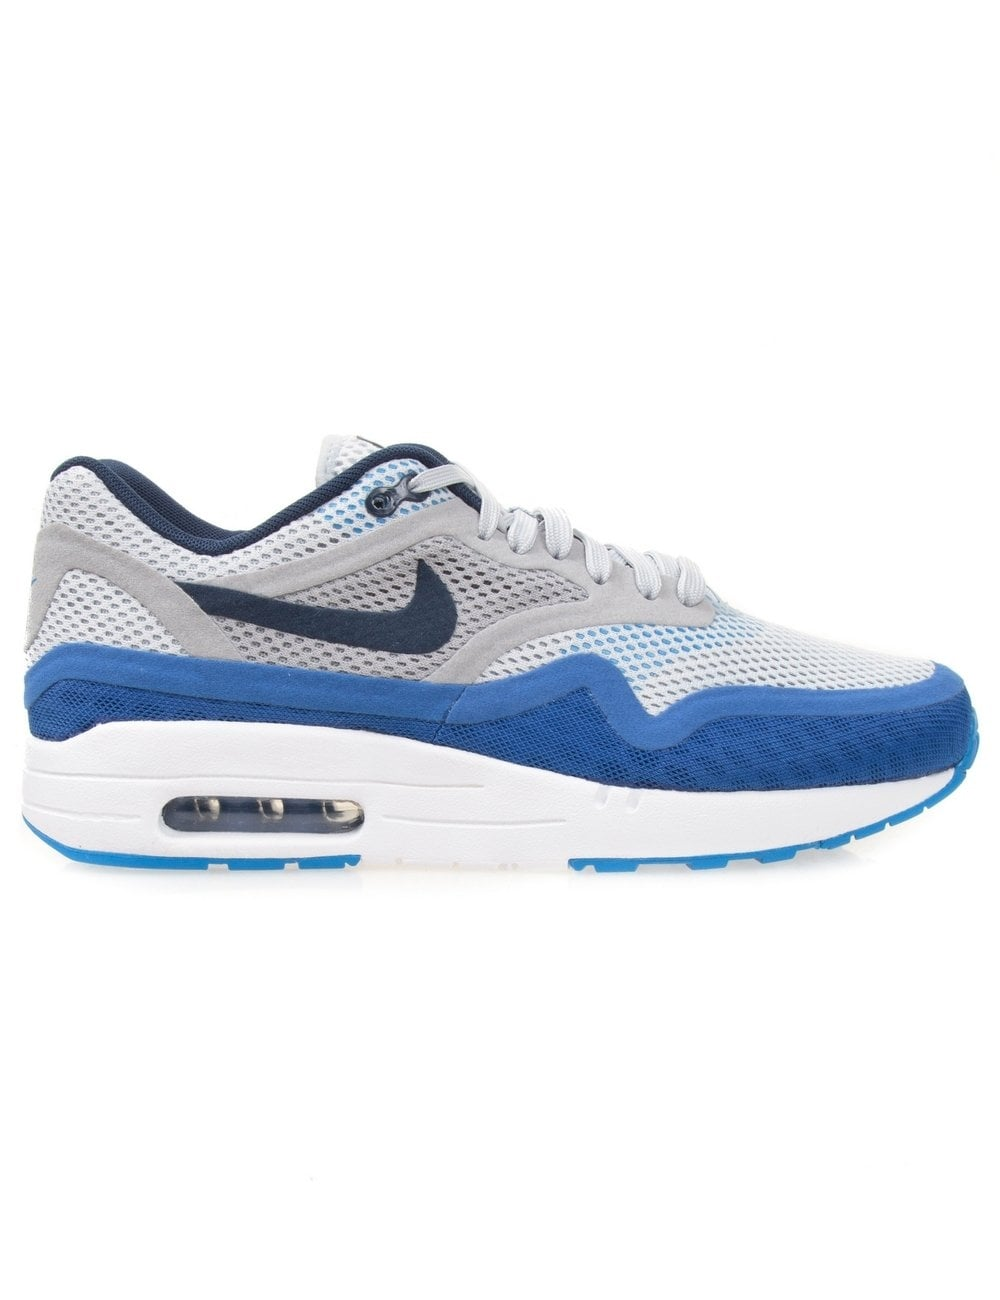 1d435bcfe075 Nike Air Max 1 Breathe - White Mid Navy - Footwear from Fat Buddha ...